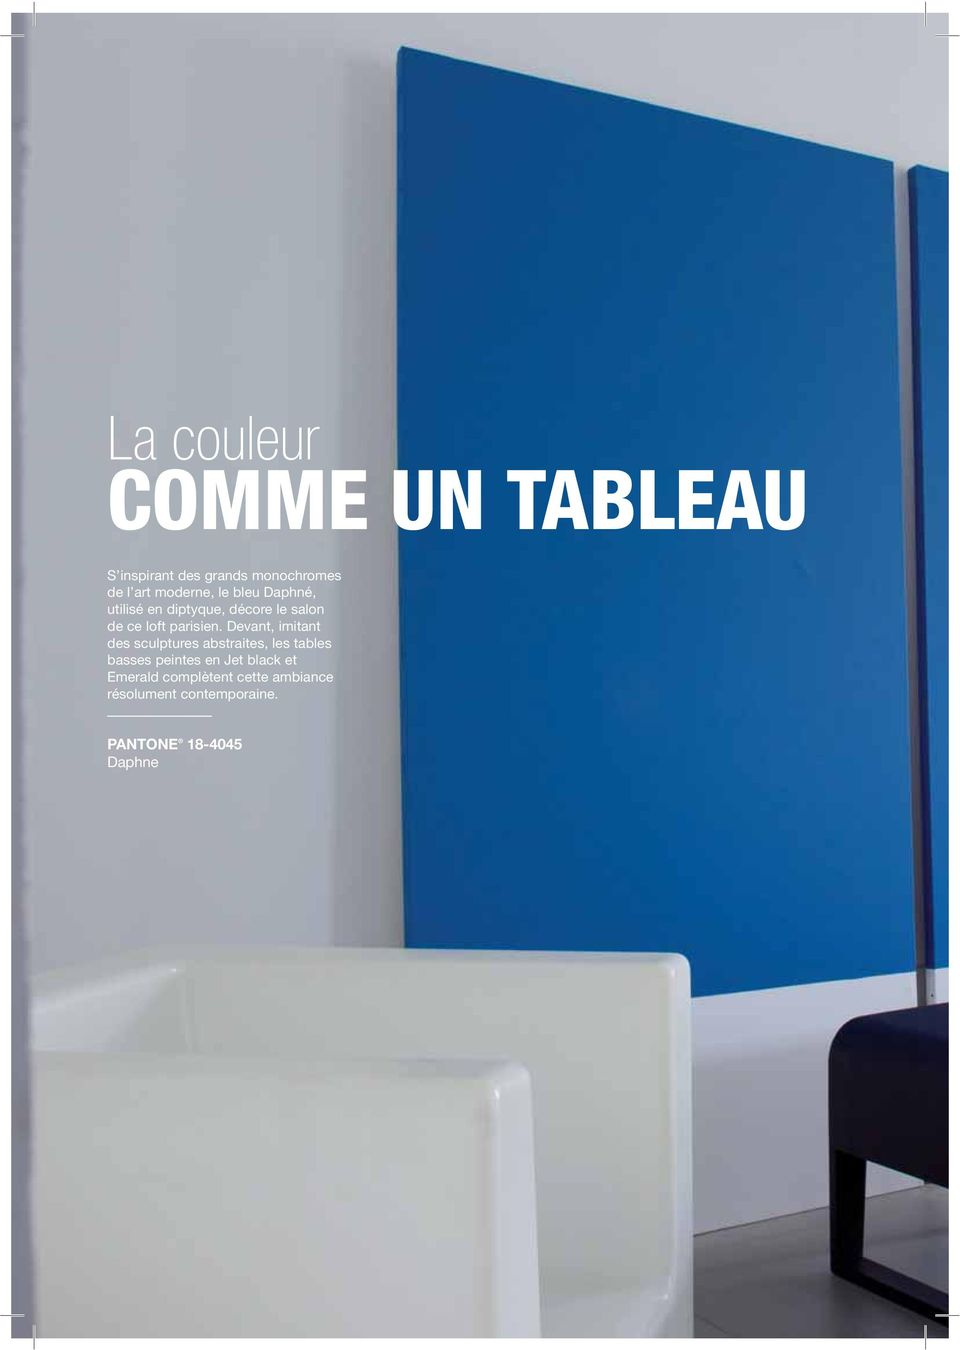 Devant, imitant des sculptures abstraites, les tables basses peintes en Jet